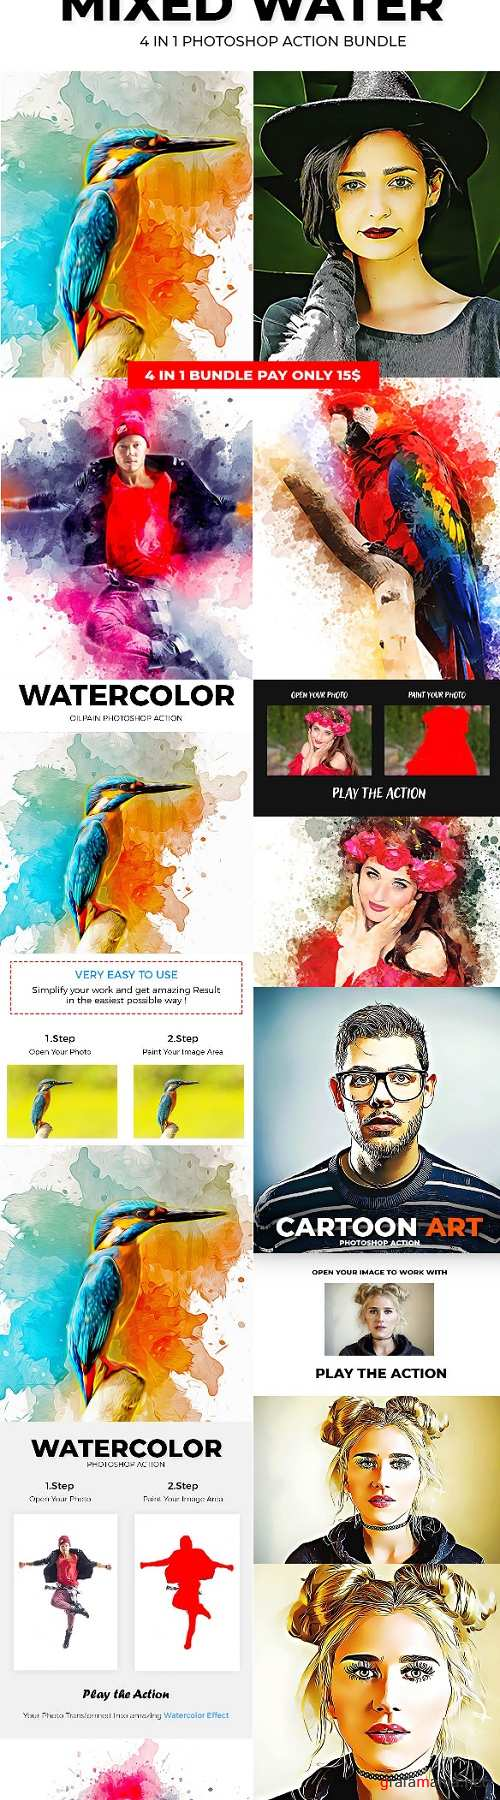 Mixed Water 4 in 1 Photoshop Action Bundle - 23414739